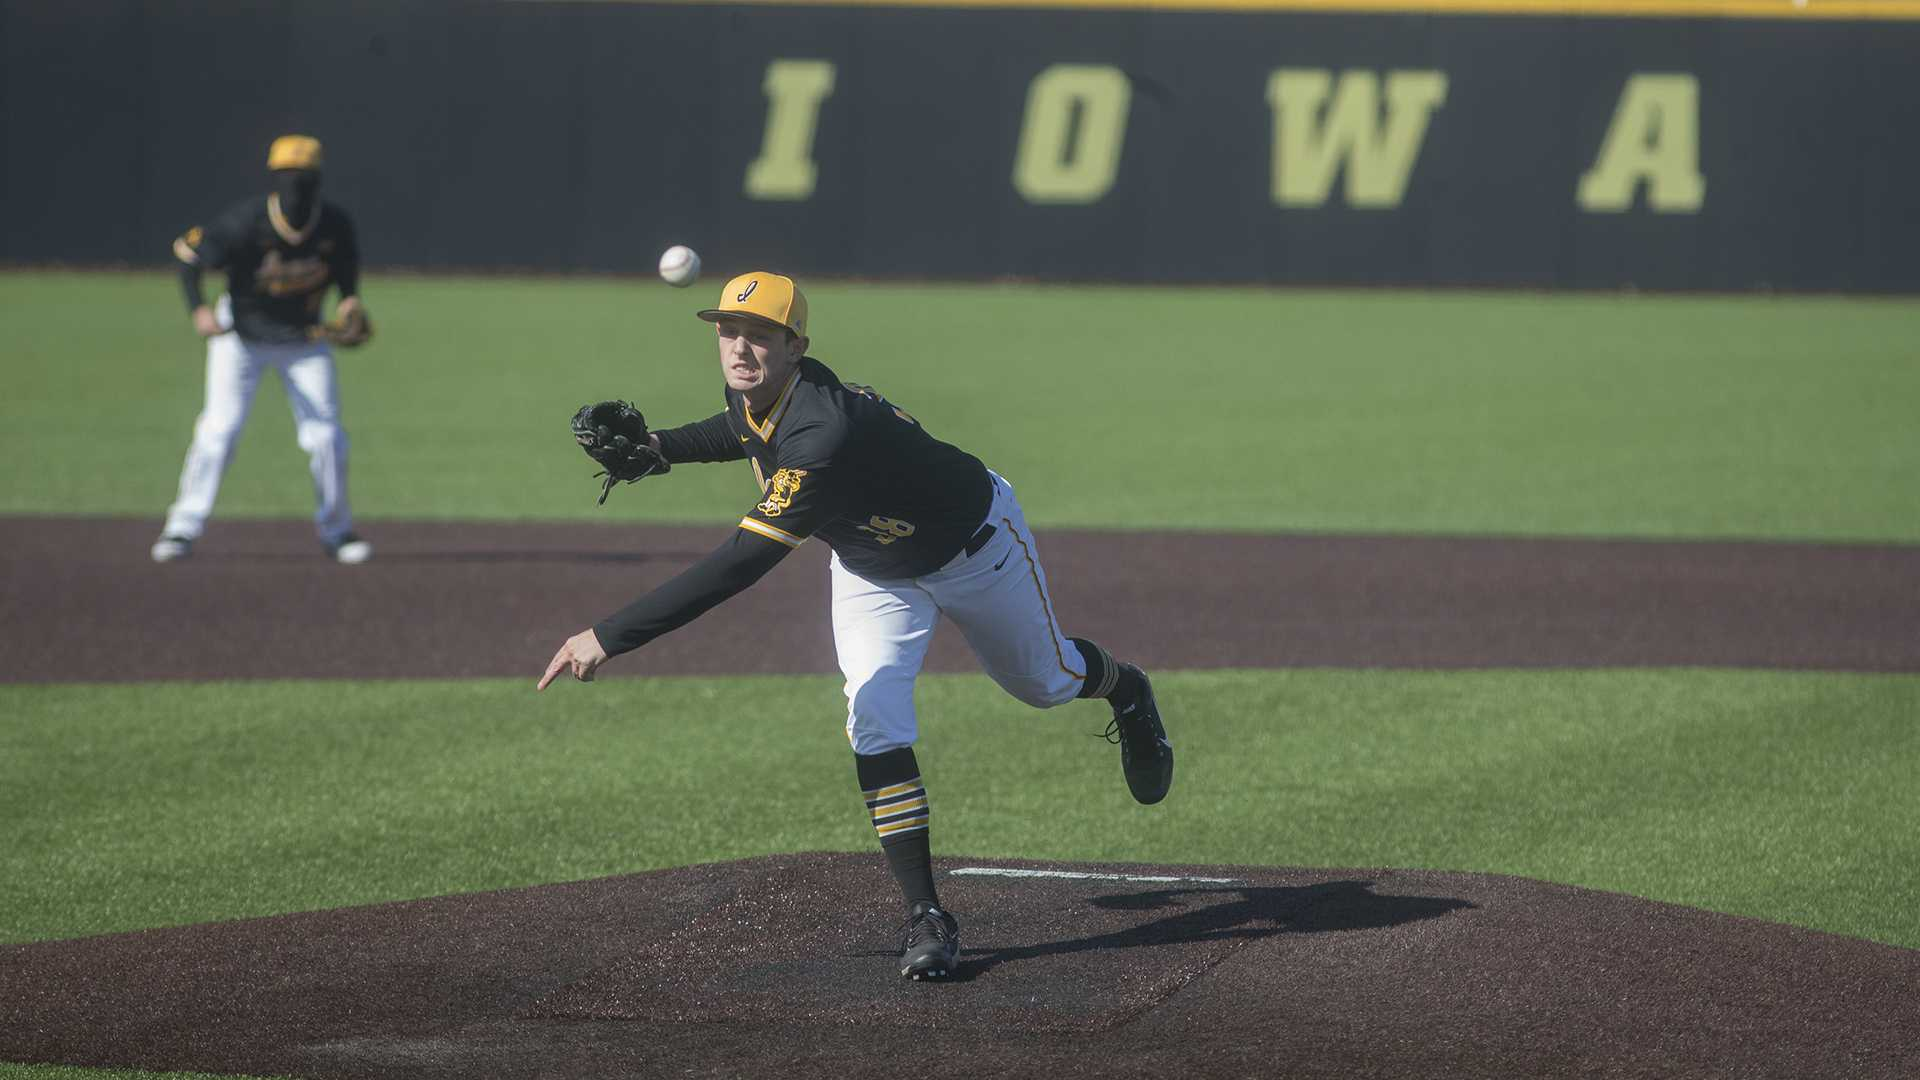 Freshman Trenton Wallace pitches during men's baseball Iowa vs Grand View on Apr 4, 2018 at Duane Banks Field. The Hawkeyes defeated the Vikings 4-2. (Katie Goodale/The Daily Iowan)